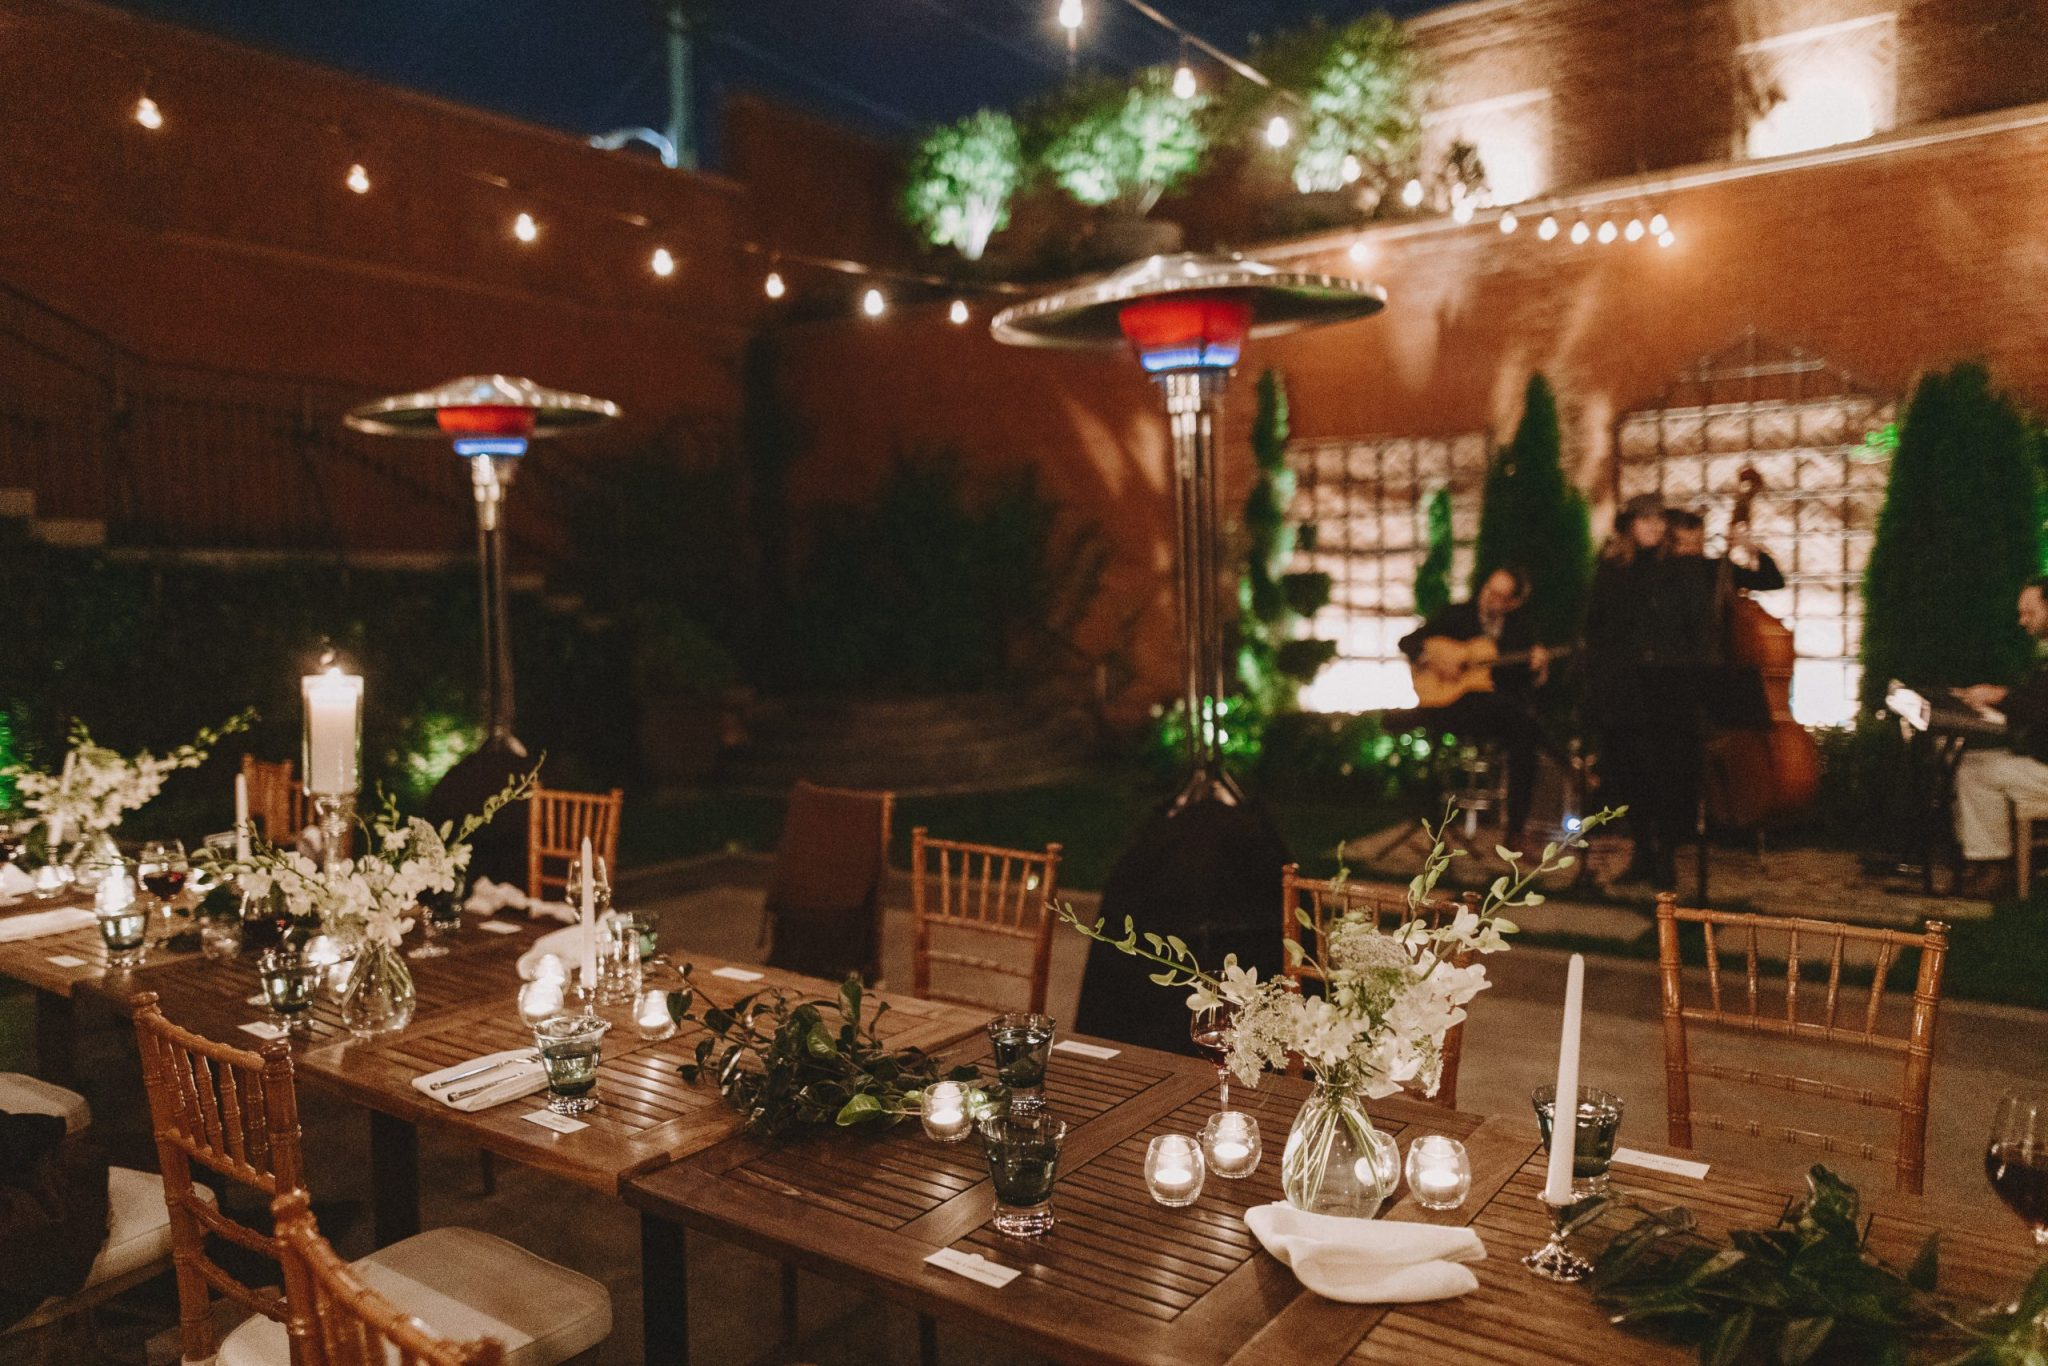 Courtyard set up for dinner with musicians in the background at night